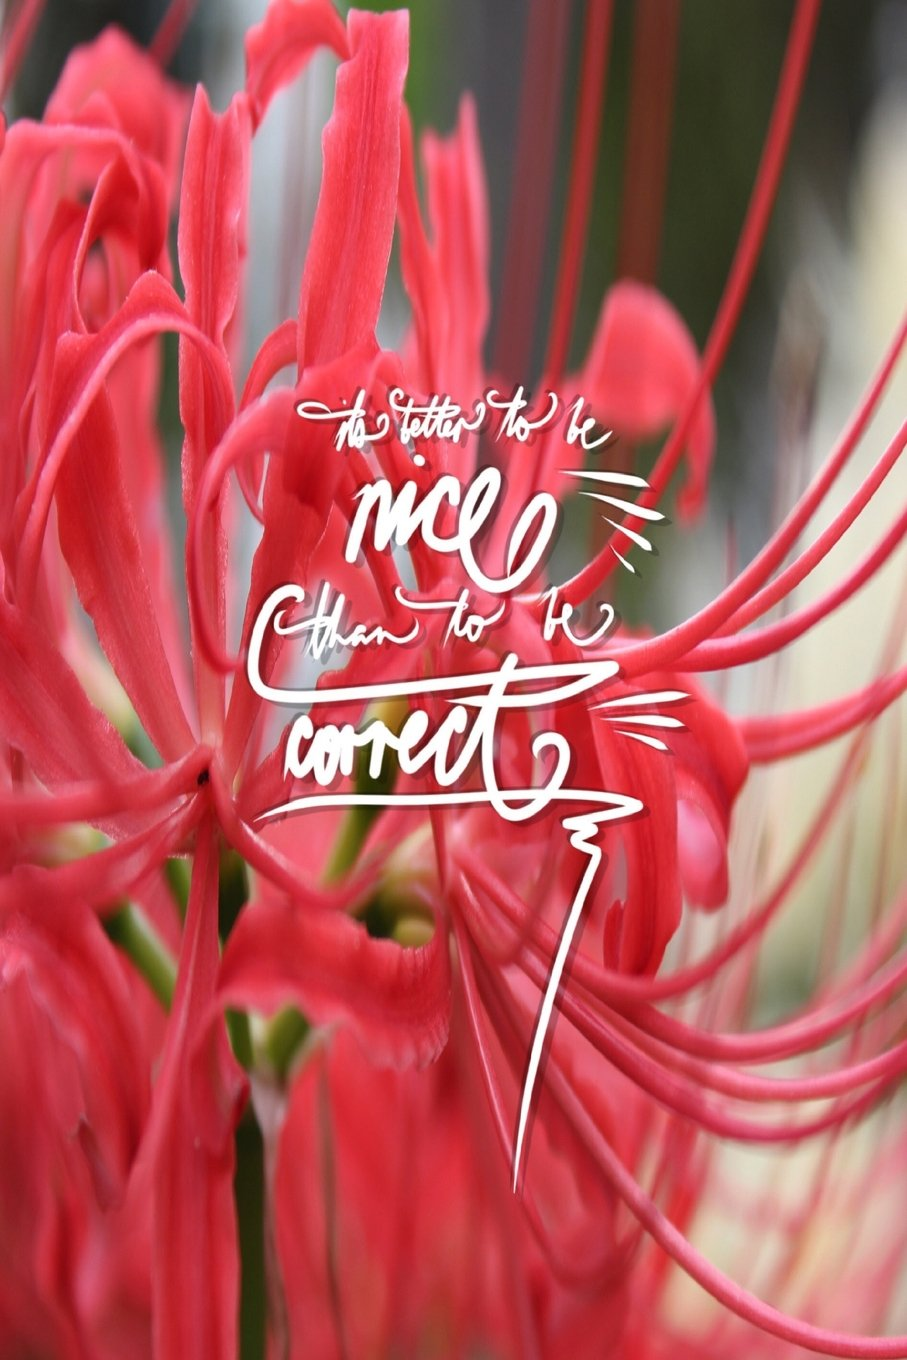 Download Its better to be nice than to be correct: 6x9 Inch Lined Journal/Notebook - Red spider lilly, red, flower, Colorful, Nature, Calligraphy Art with photography, Gift idea PDF